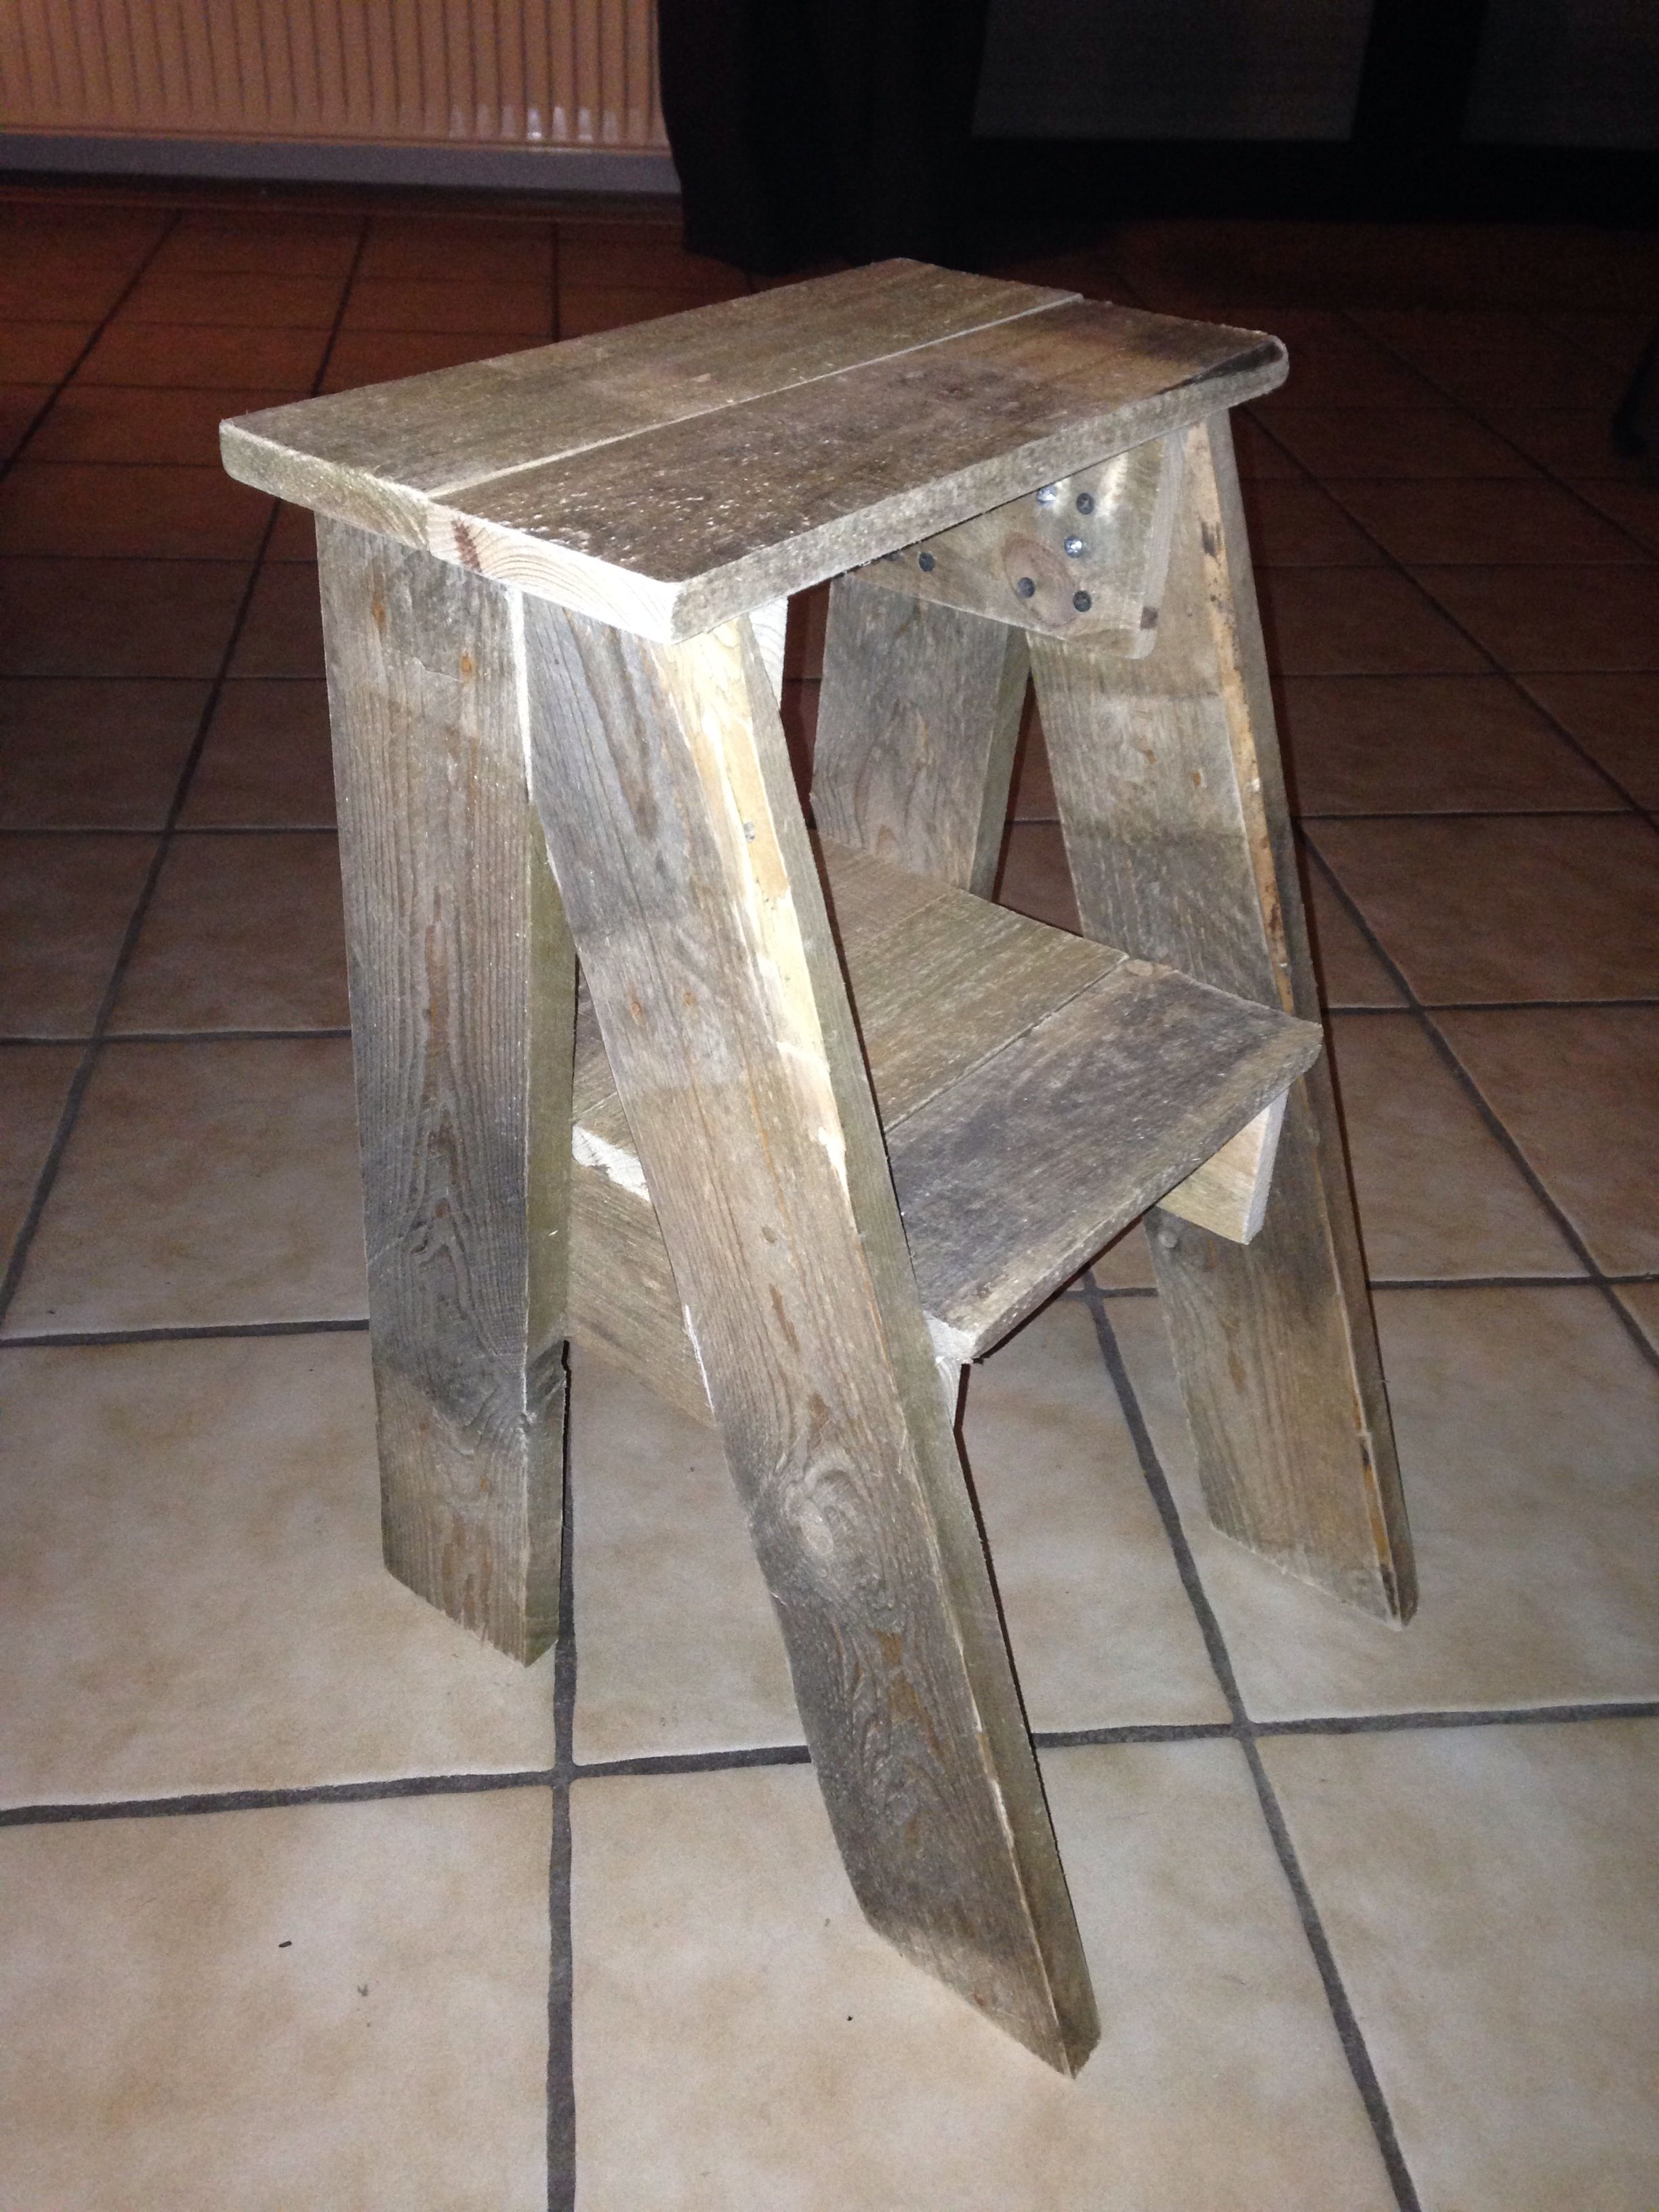 Bedside Footstool: Step Stool Bedside Table From Pallet Wood. Basically, Ana